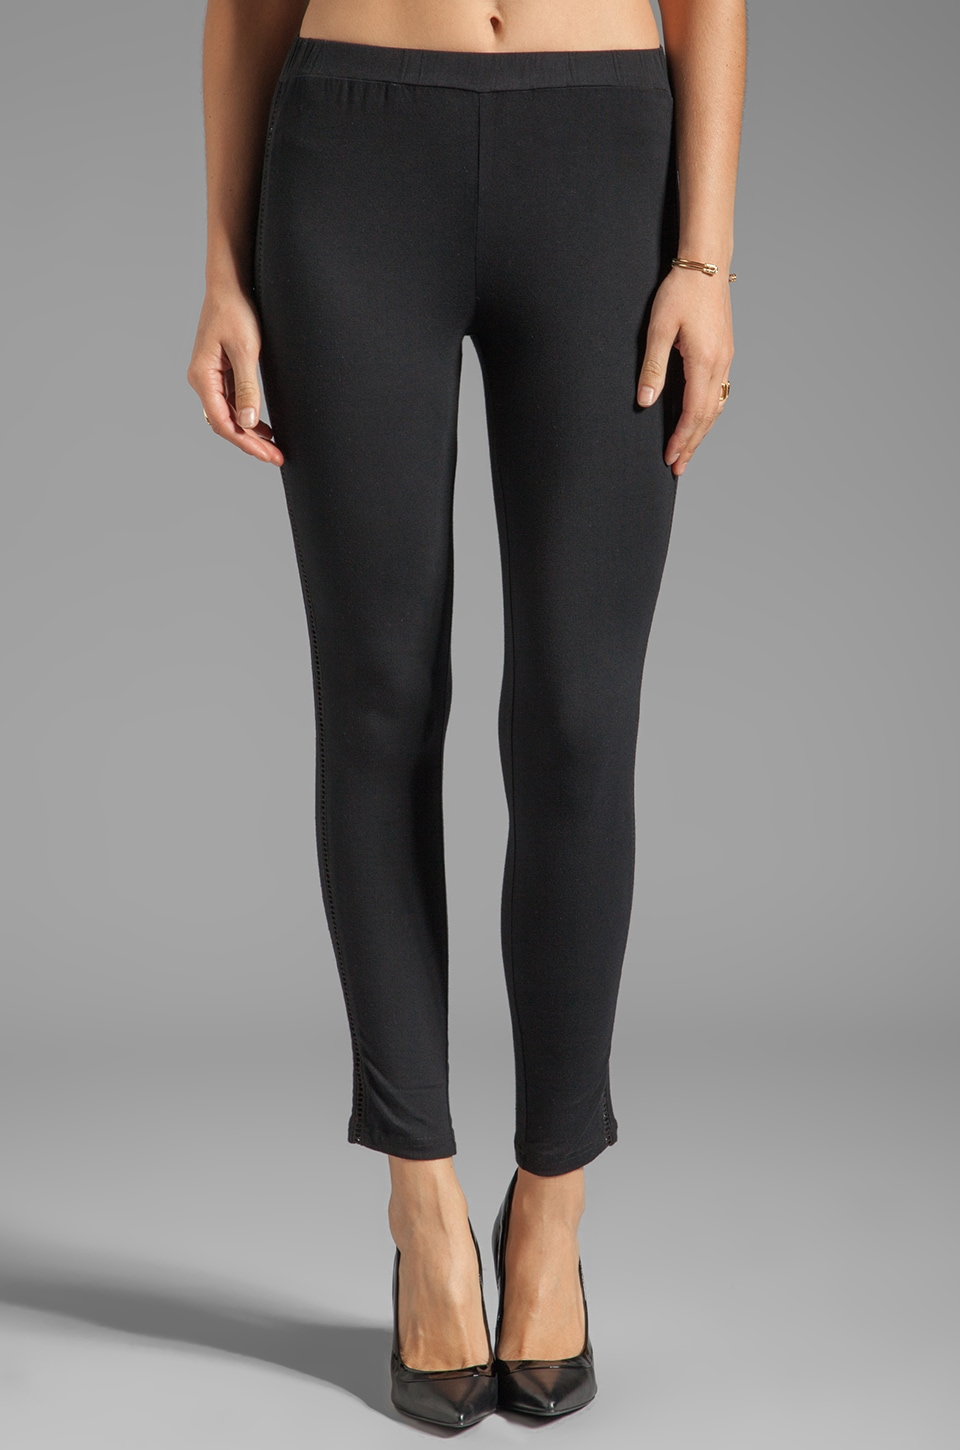 STYLESTALKER Count Down Legging in Black